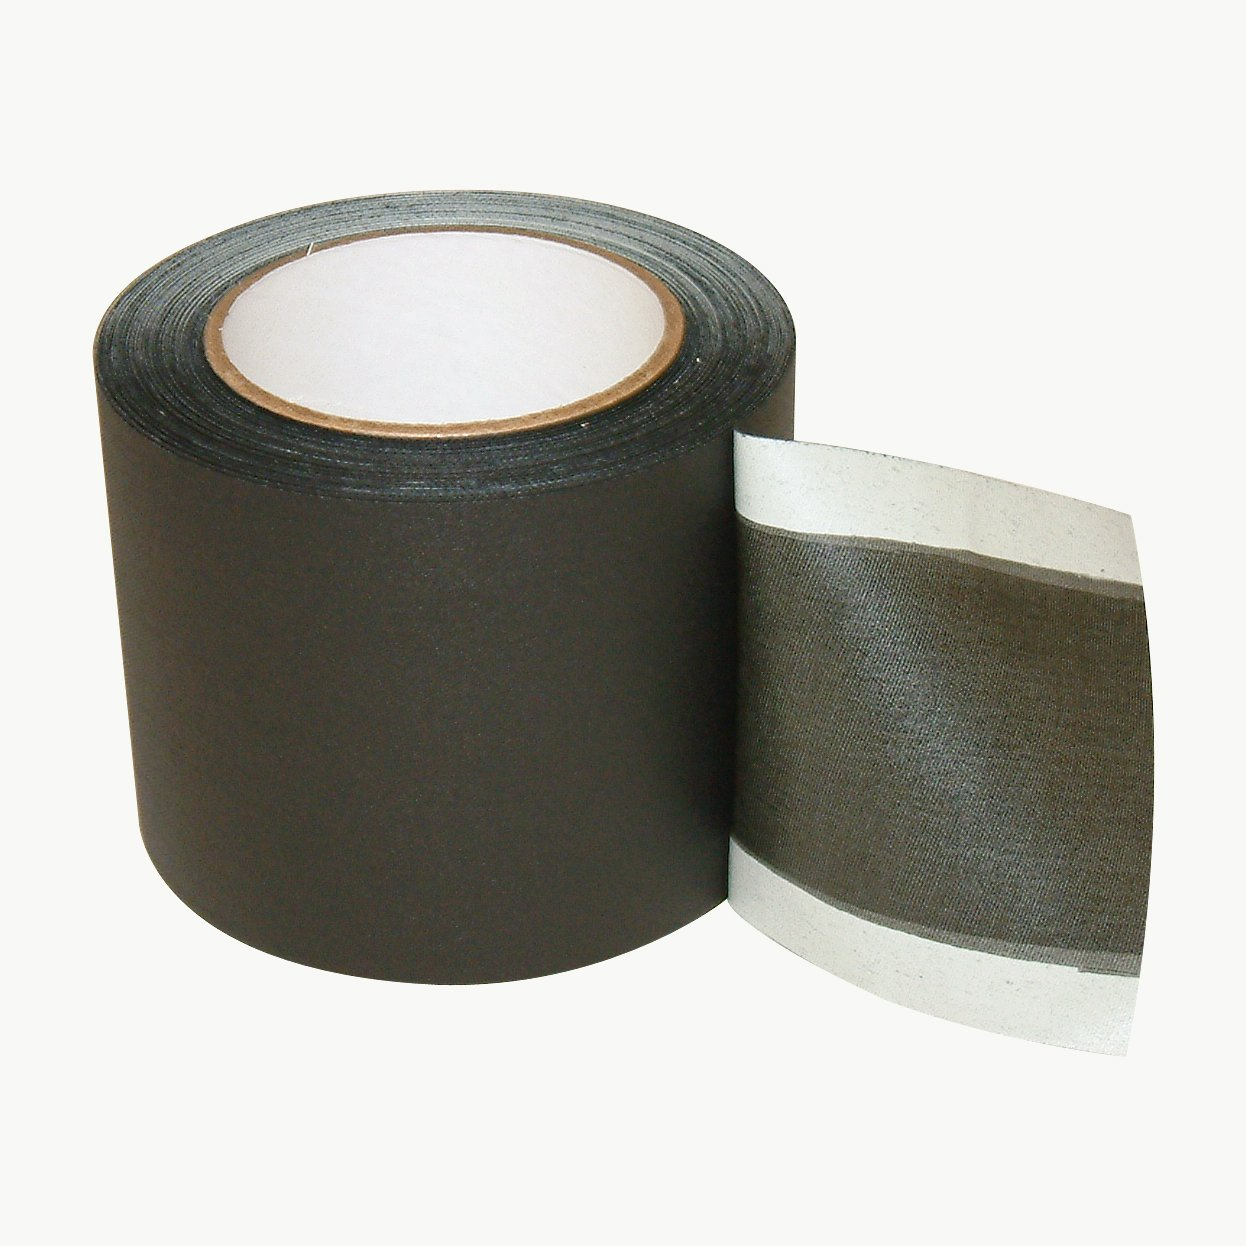 J.V. Converting Wire-Line/BLK425 JVCC Wire-Line Cable Cover Tape: 4'' x 75 ft, black